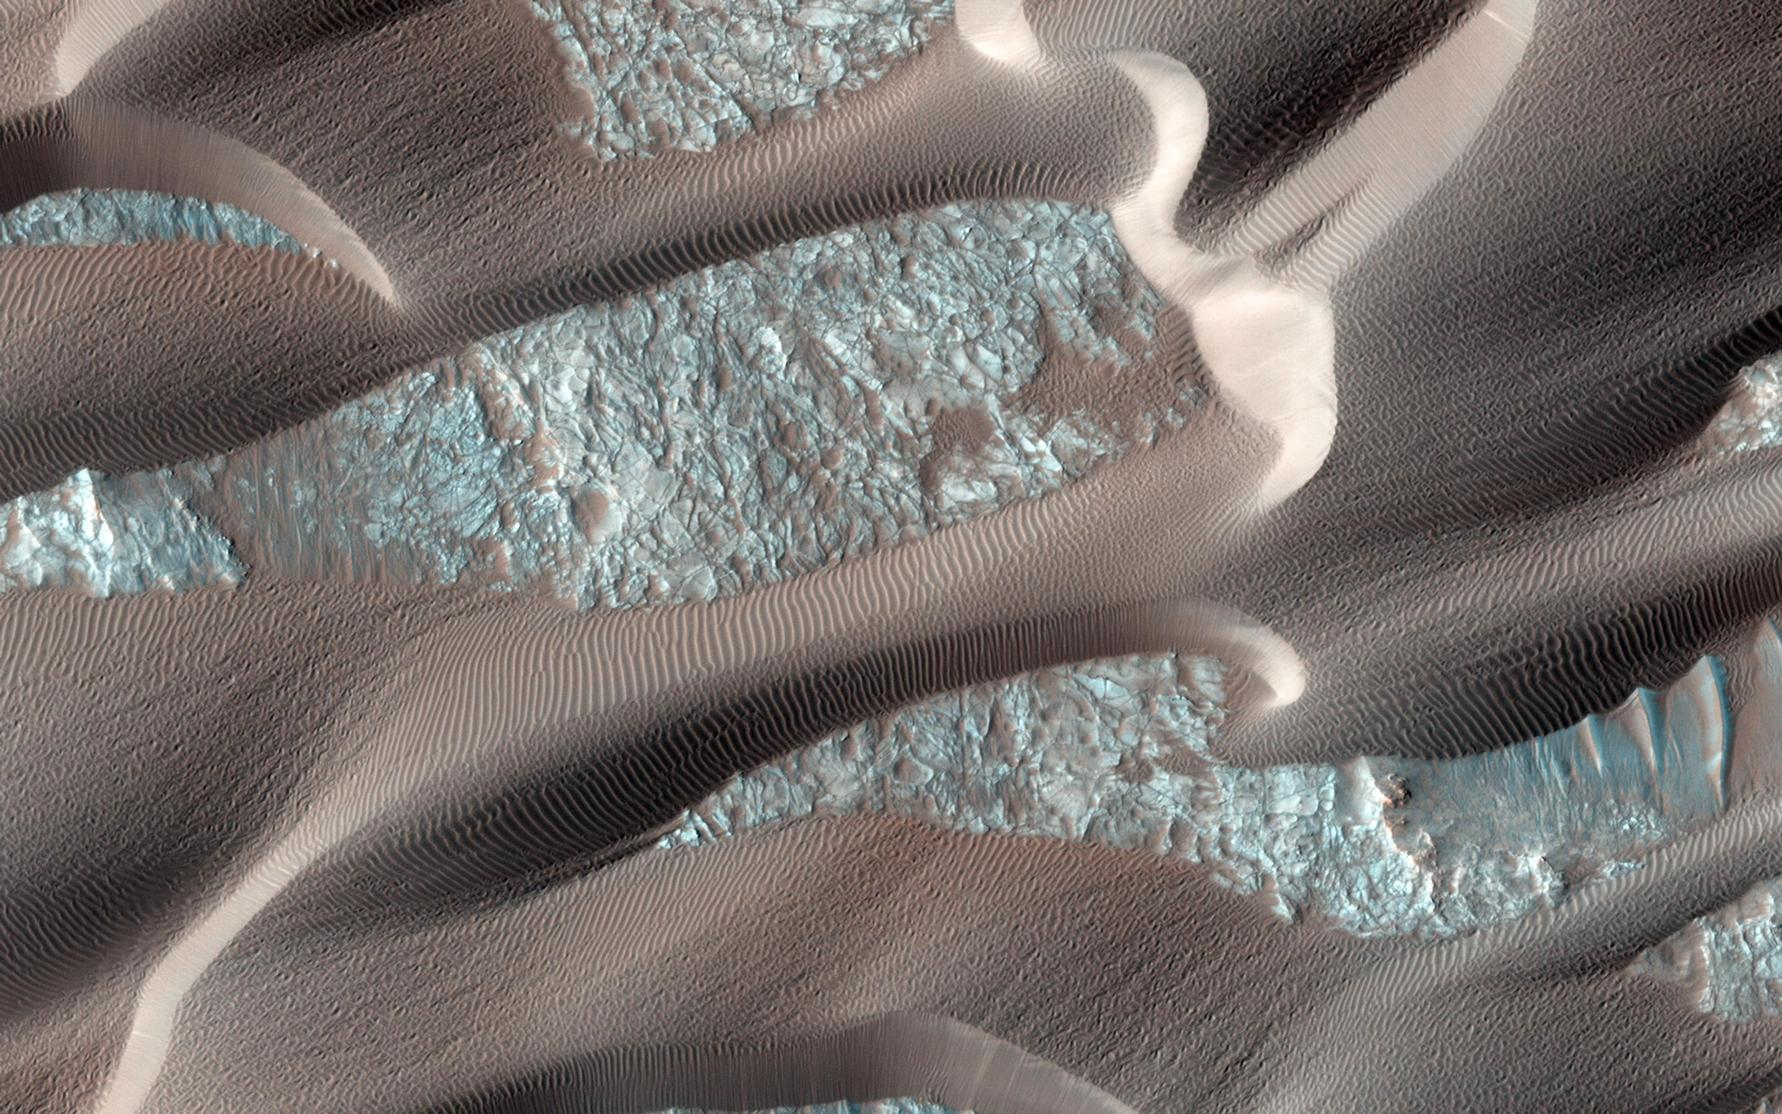 This image shows, smooth dark dunes, with lighter gray sand in between them.